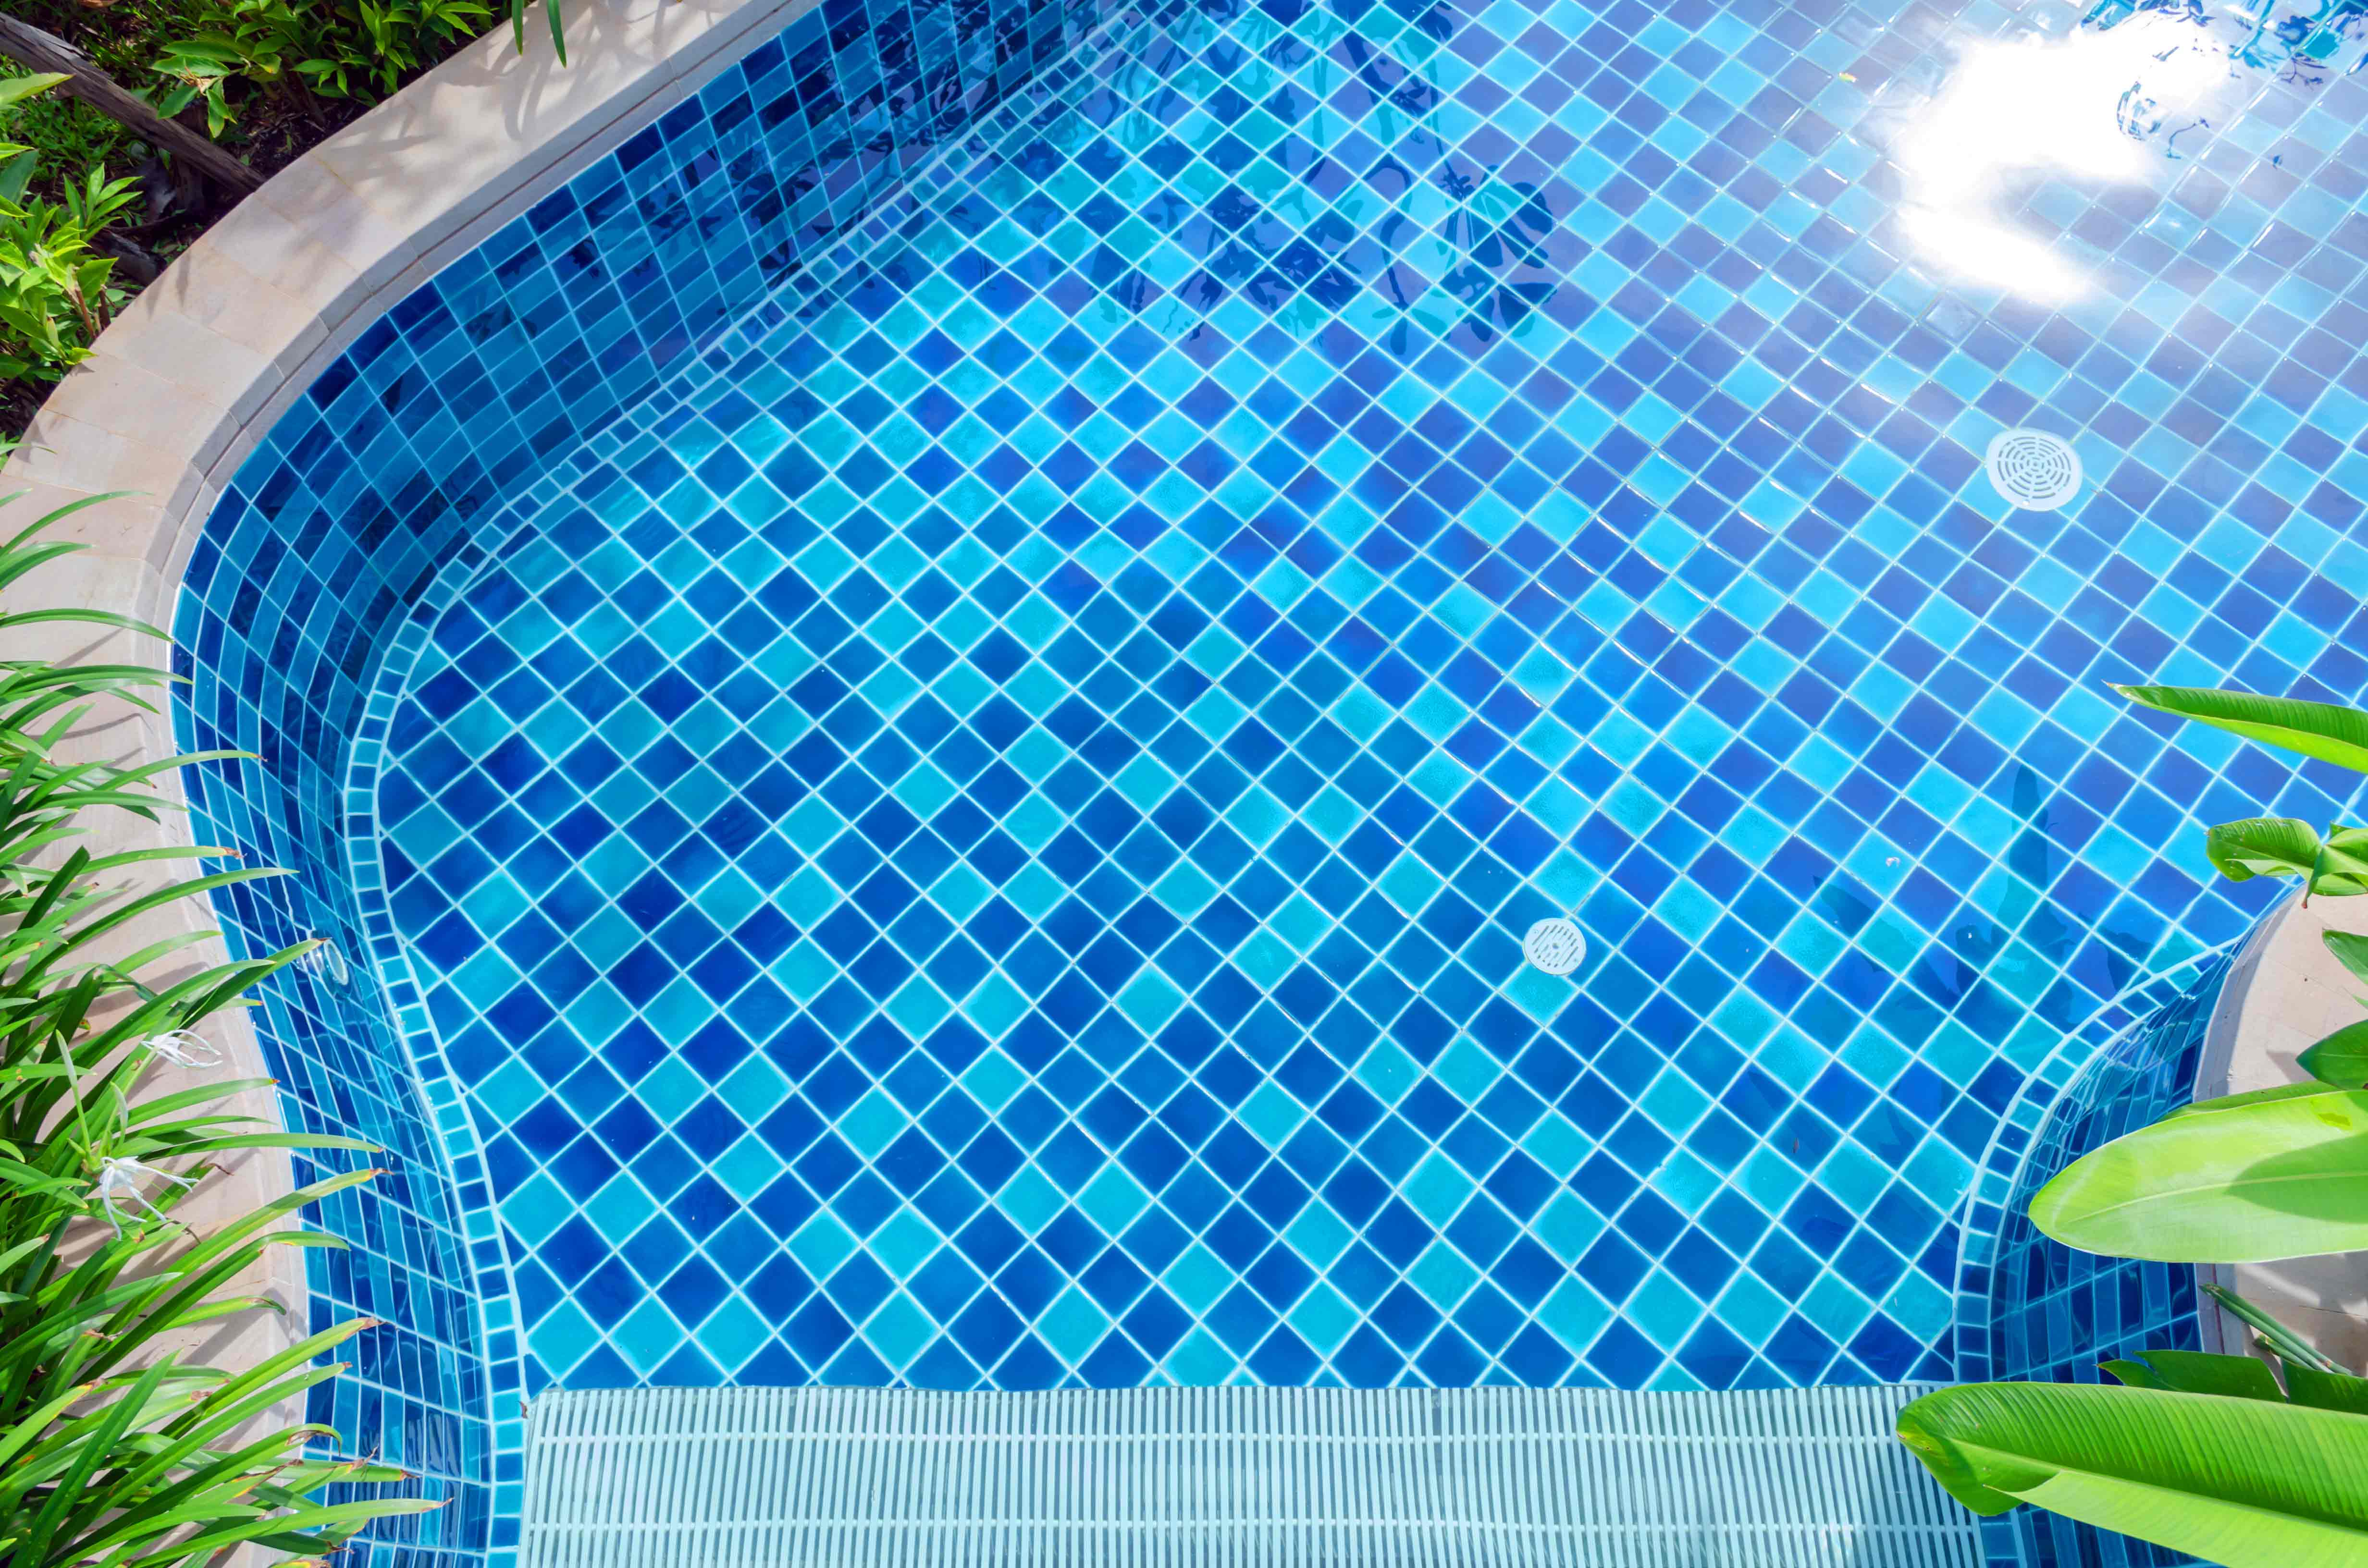 What Affects My Swimming Pool Water Chemistry?